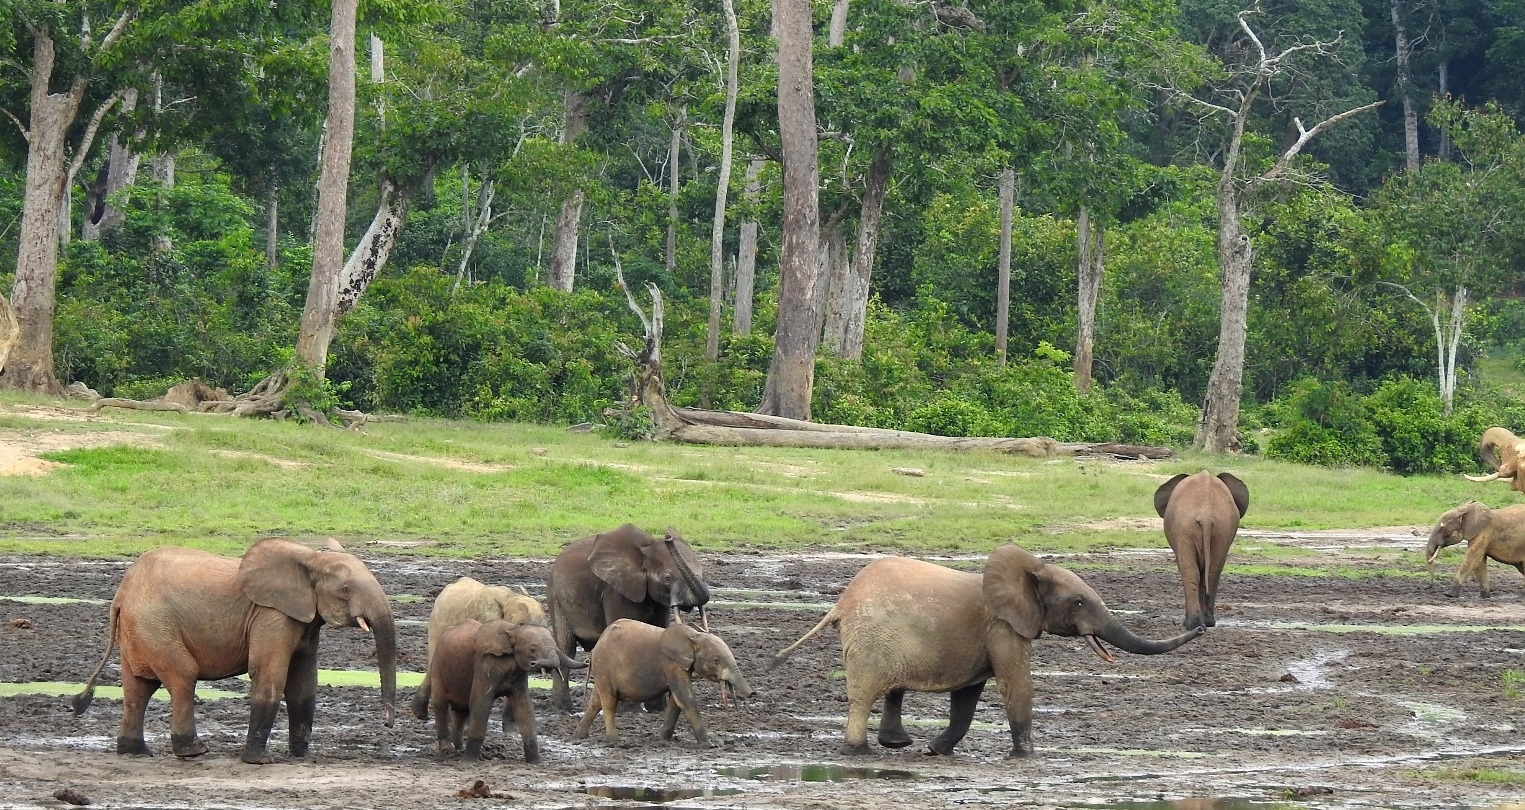 Forest elephants at Dzanga-Sangha National Park in Central African Republic are smaller, with more rounded ears and straighter tusks, than savanna elephants.